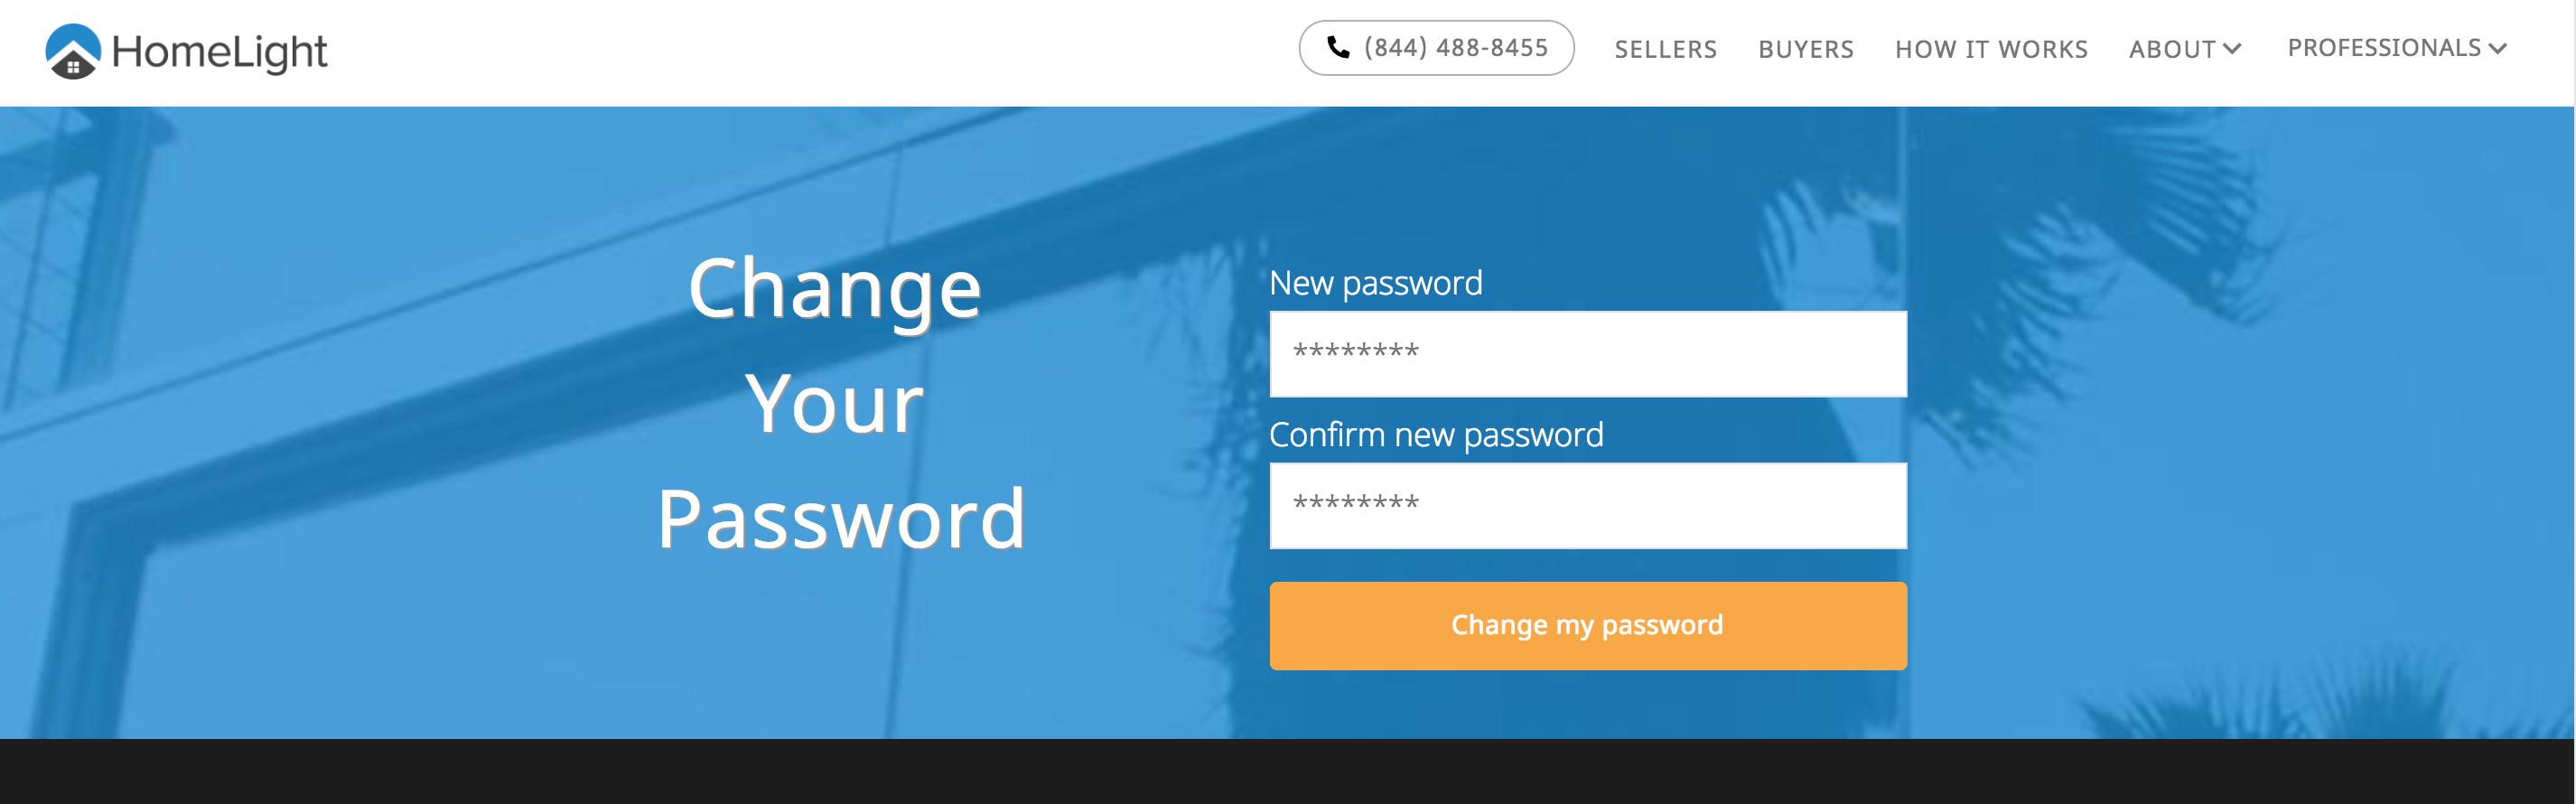 change_password_page.png